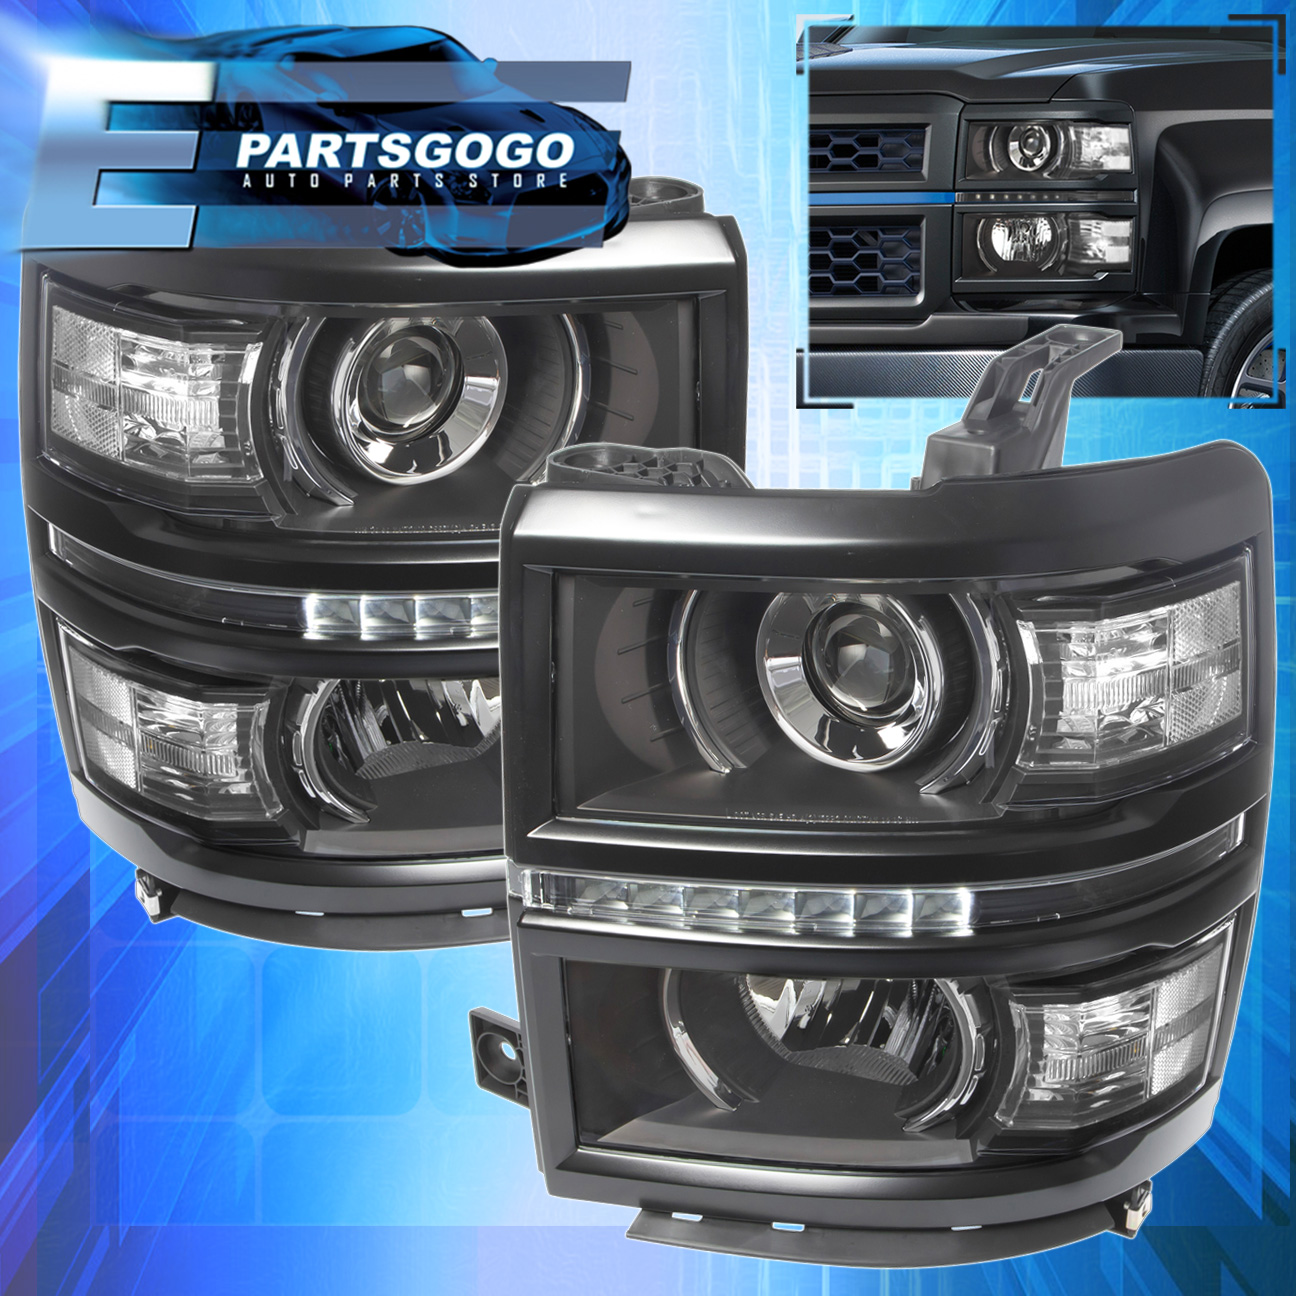 Silverado » 1994 Chevy Silverado Headlights - Old Chevy Photos ...